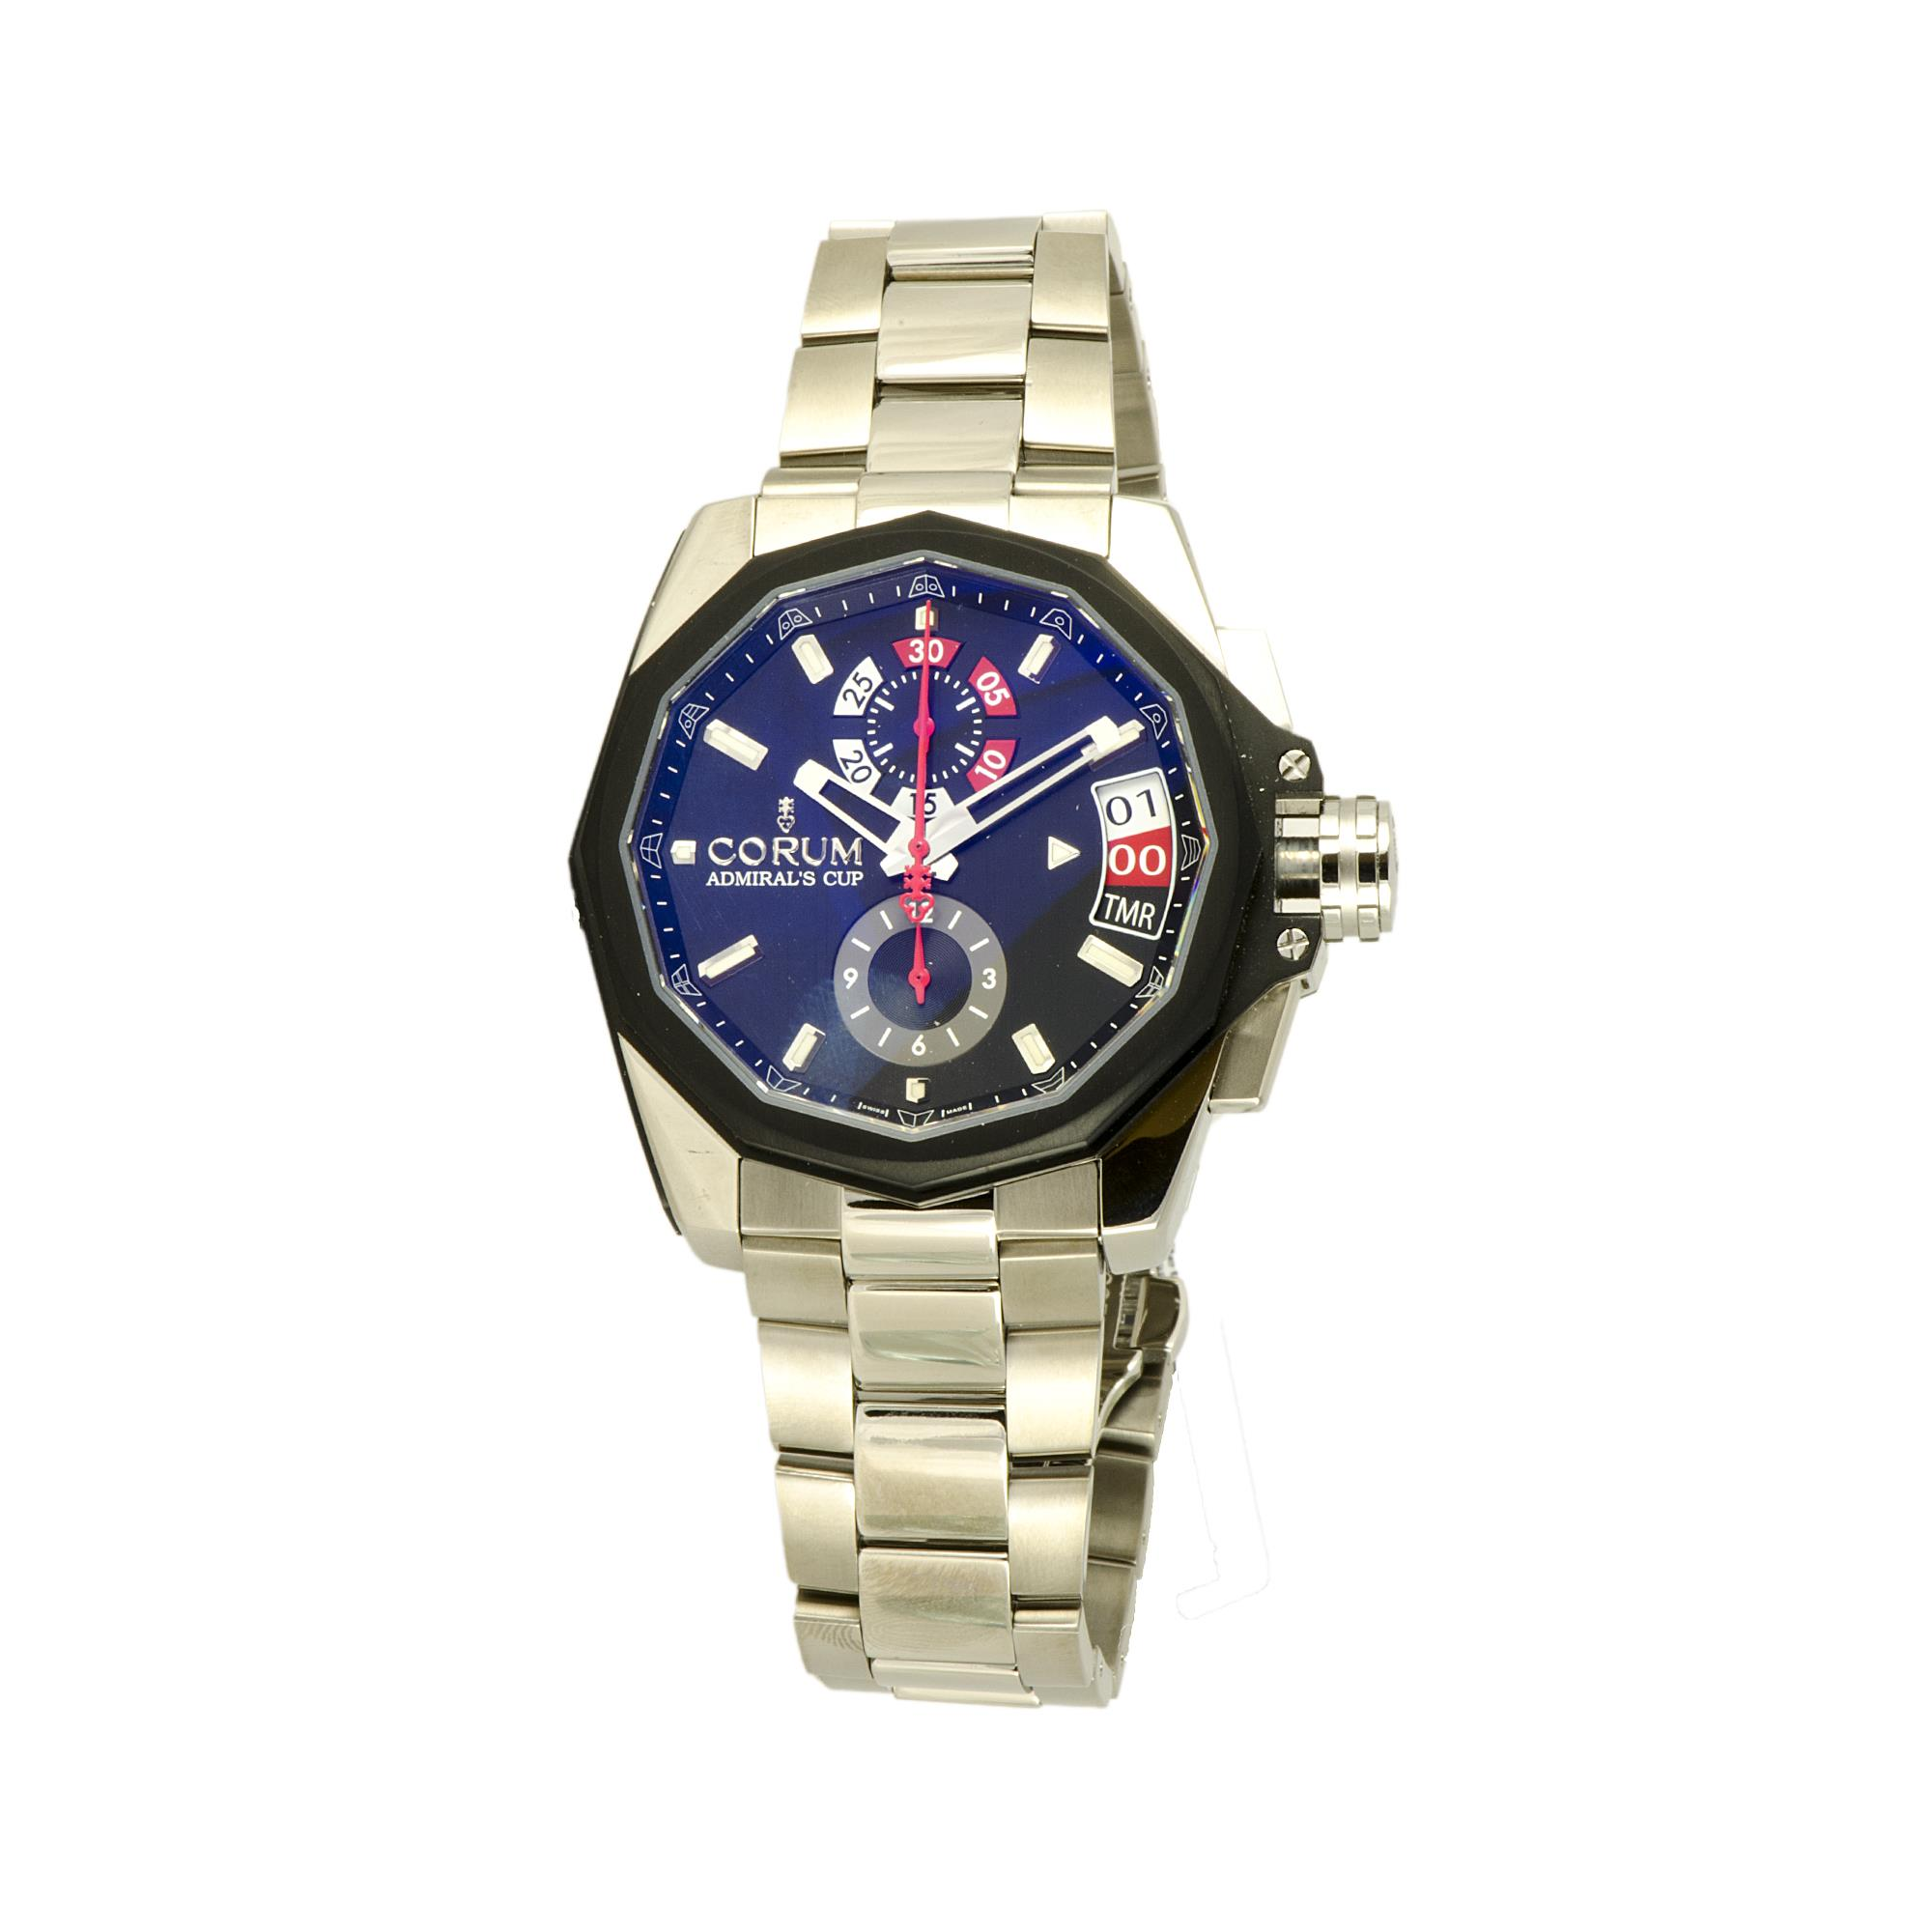 OROLOGIO REGATTA 45 MM - CORUM